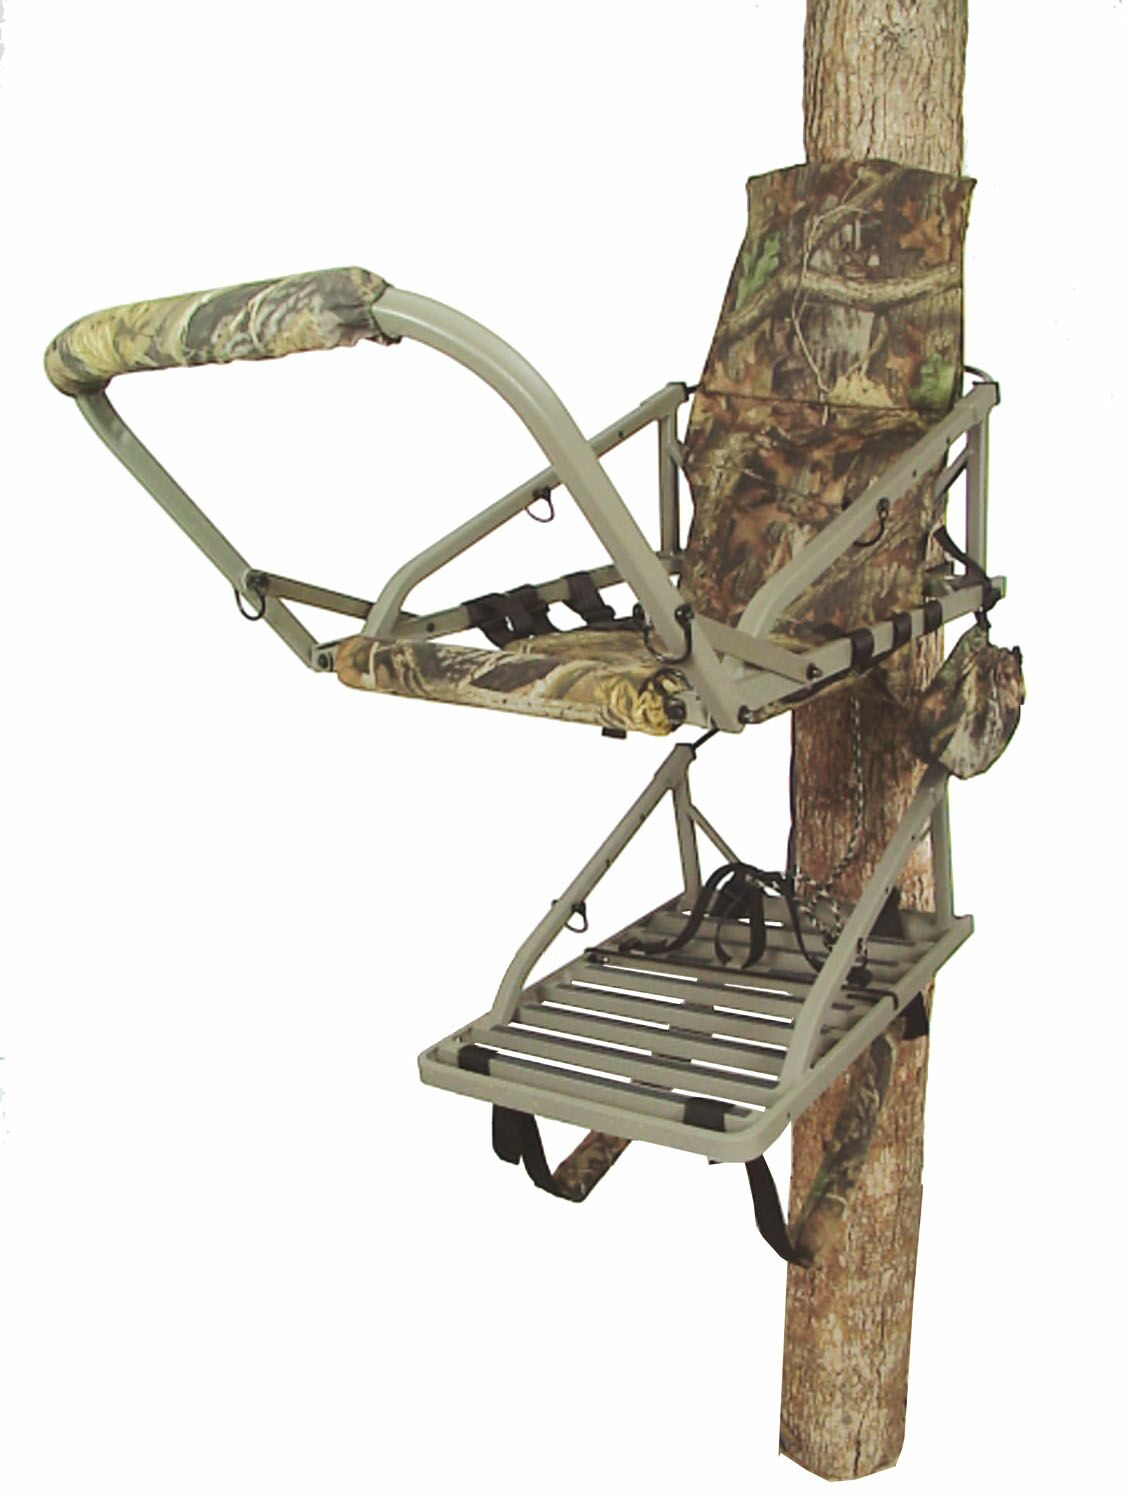 Cpsc Api Outdoors Announce Recall Of Hunting Treestands